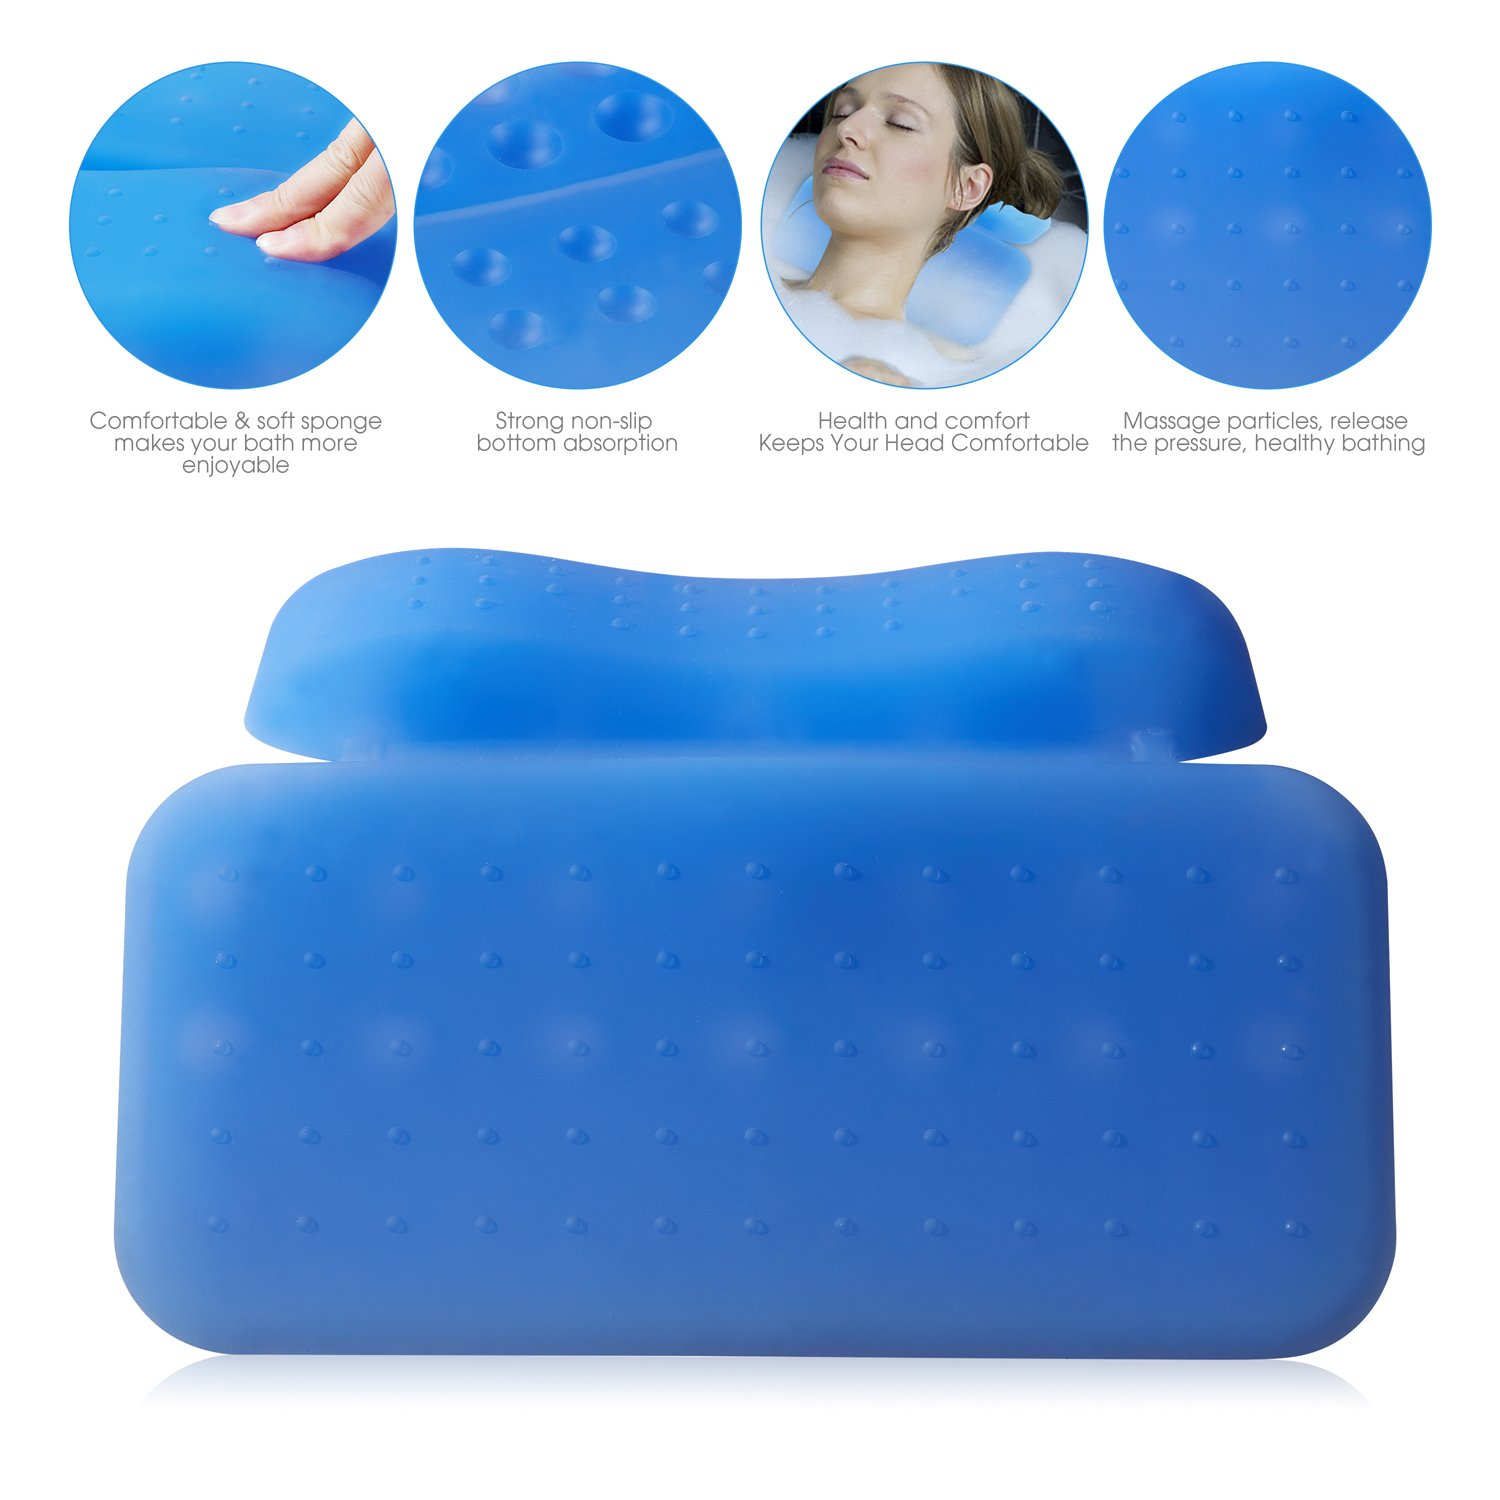 Luxurious Silicone Bathtub Pillow 14'' x 10'',2-Panel Design for Shoulder & Neck Support. Non-Slip, Extra Thick, Soft and Large, Anti-bacterial by Silicone. Fits Any Size Tub. Luxury Spa Tub Pillows. by Universal product (Image #5)